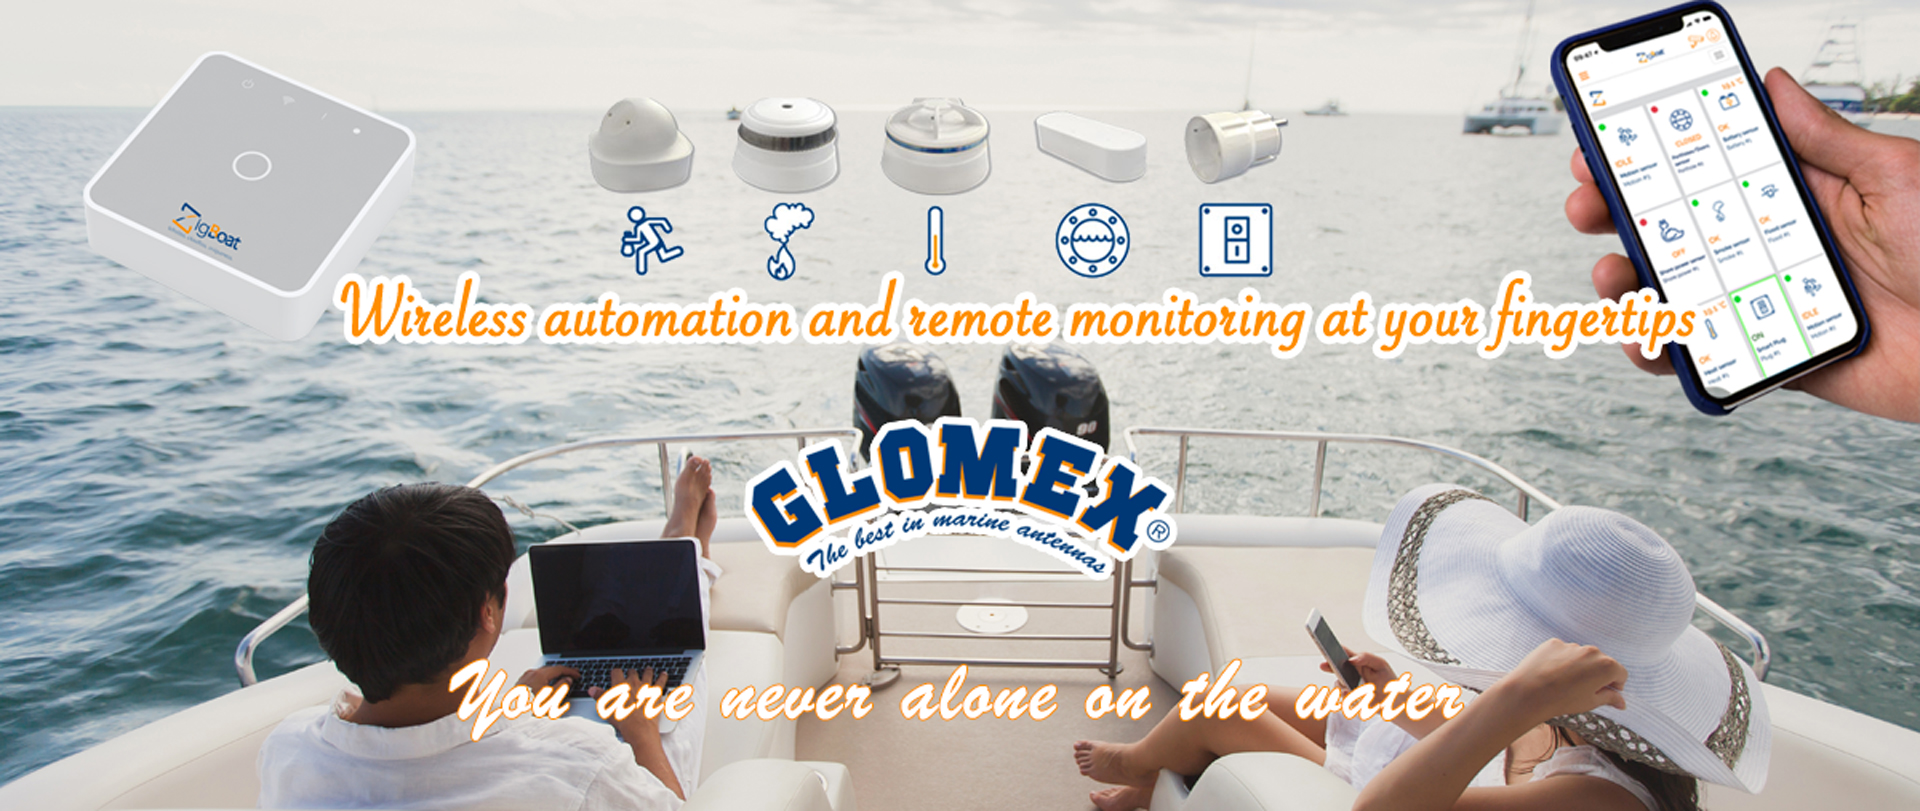 ZigBoat™ - Glomex Marine Antennas - Wireless Automation and monitoring on your fingertips